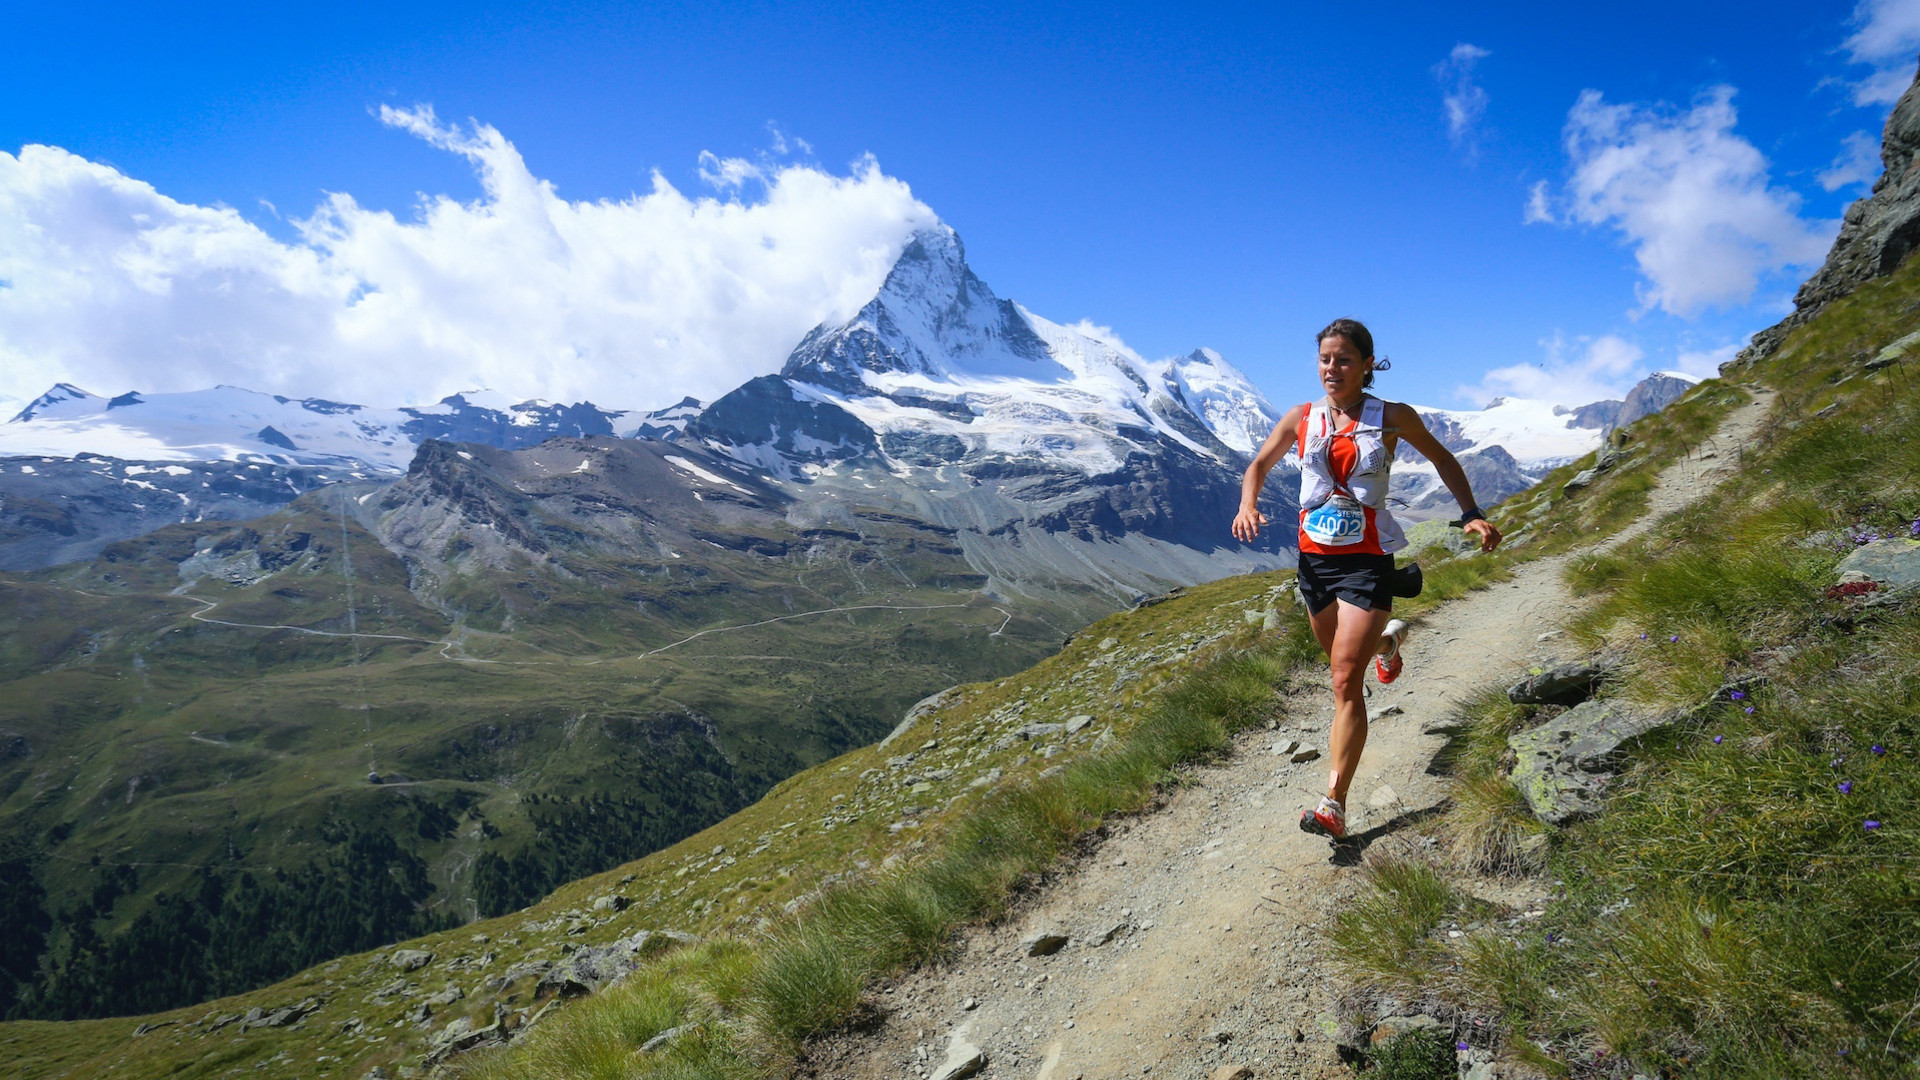 Taking on the Matterhorn Ultraks race